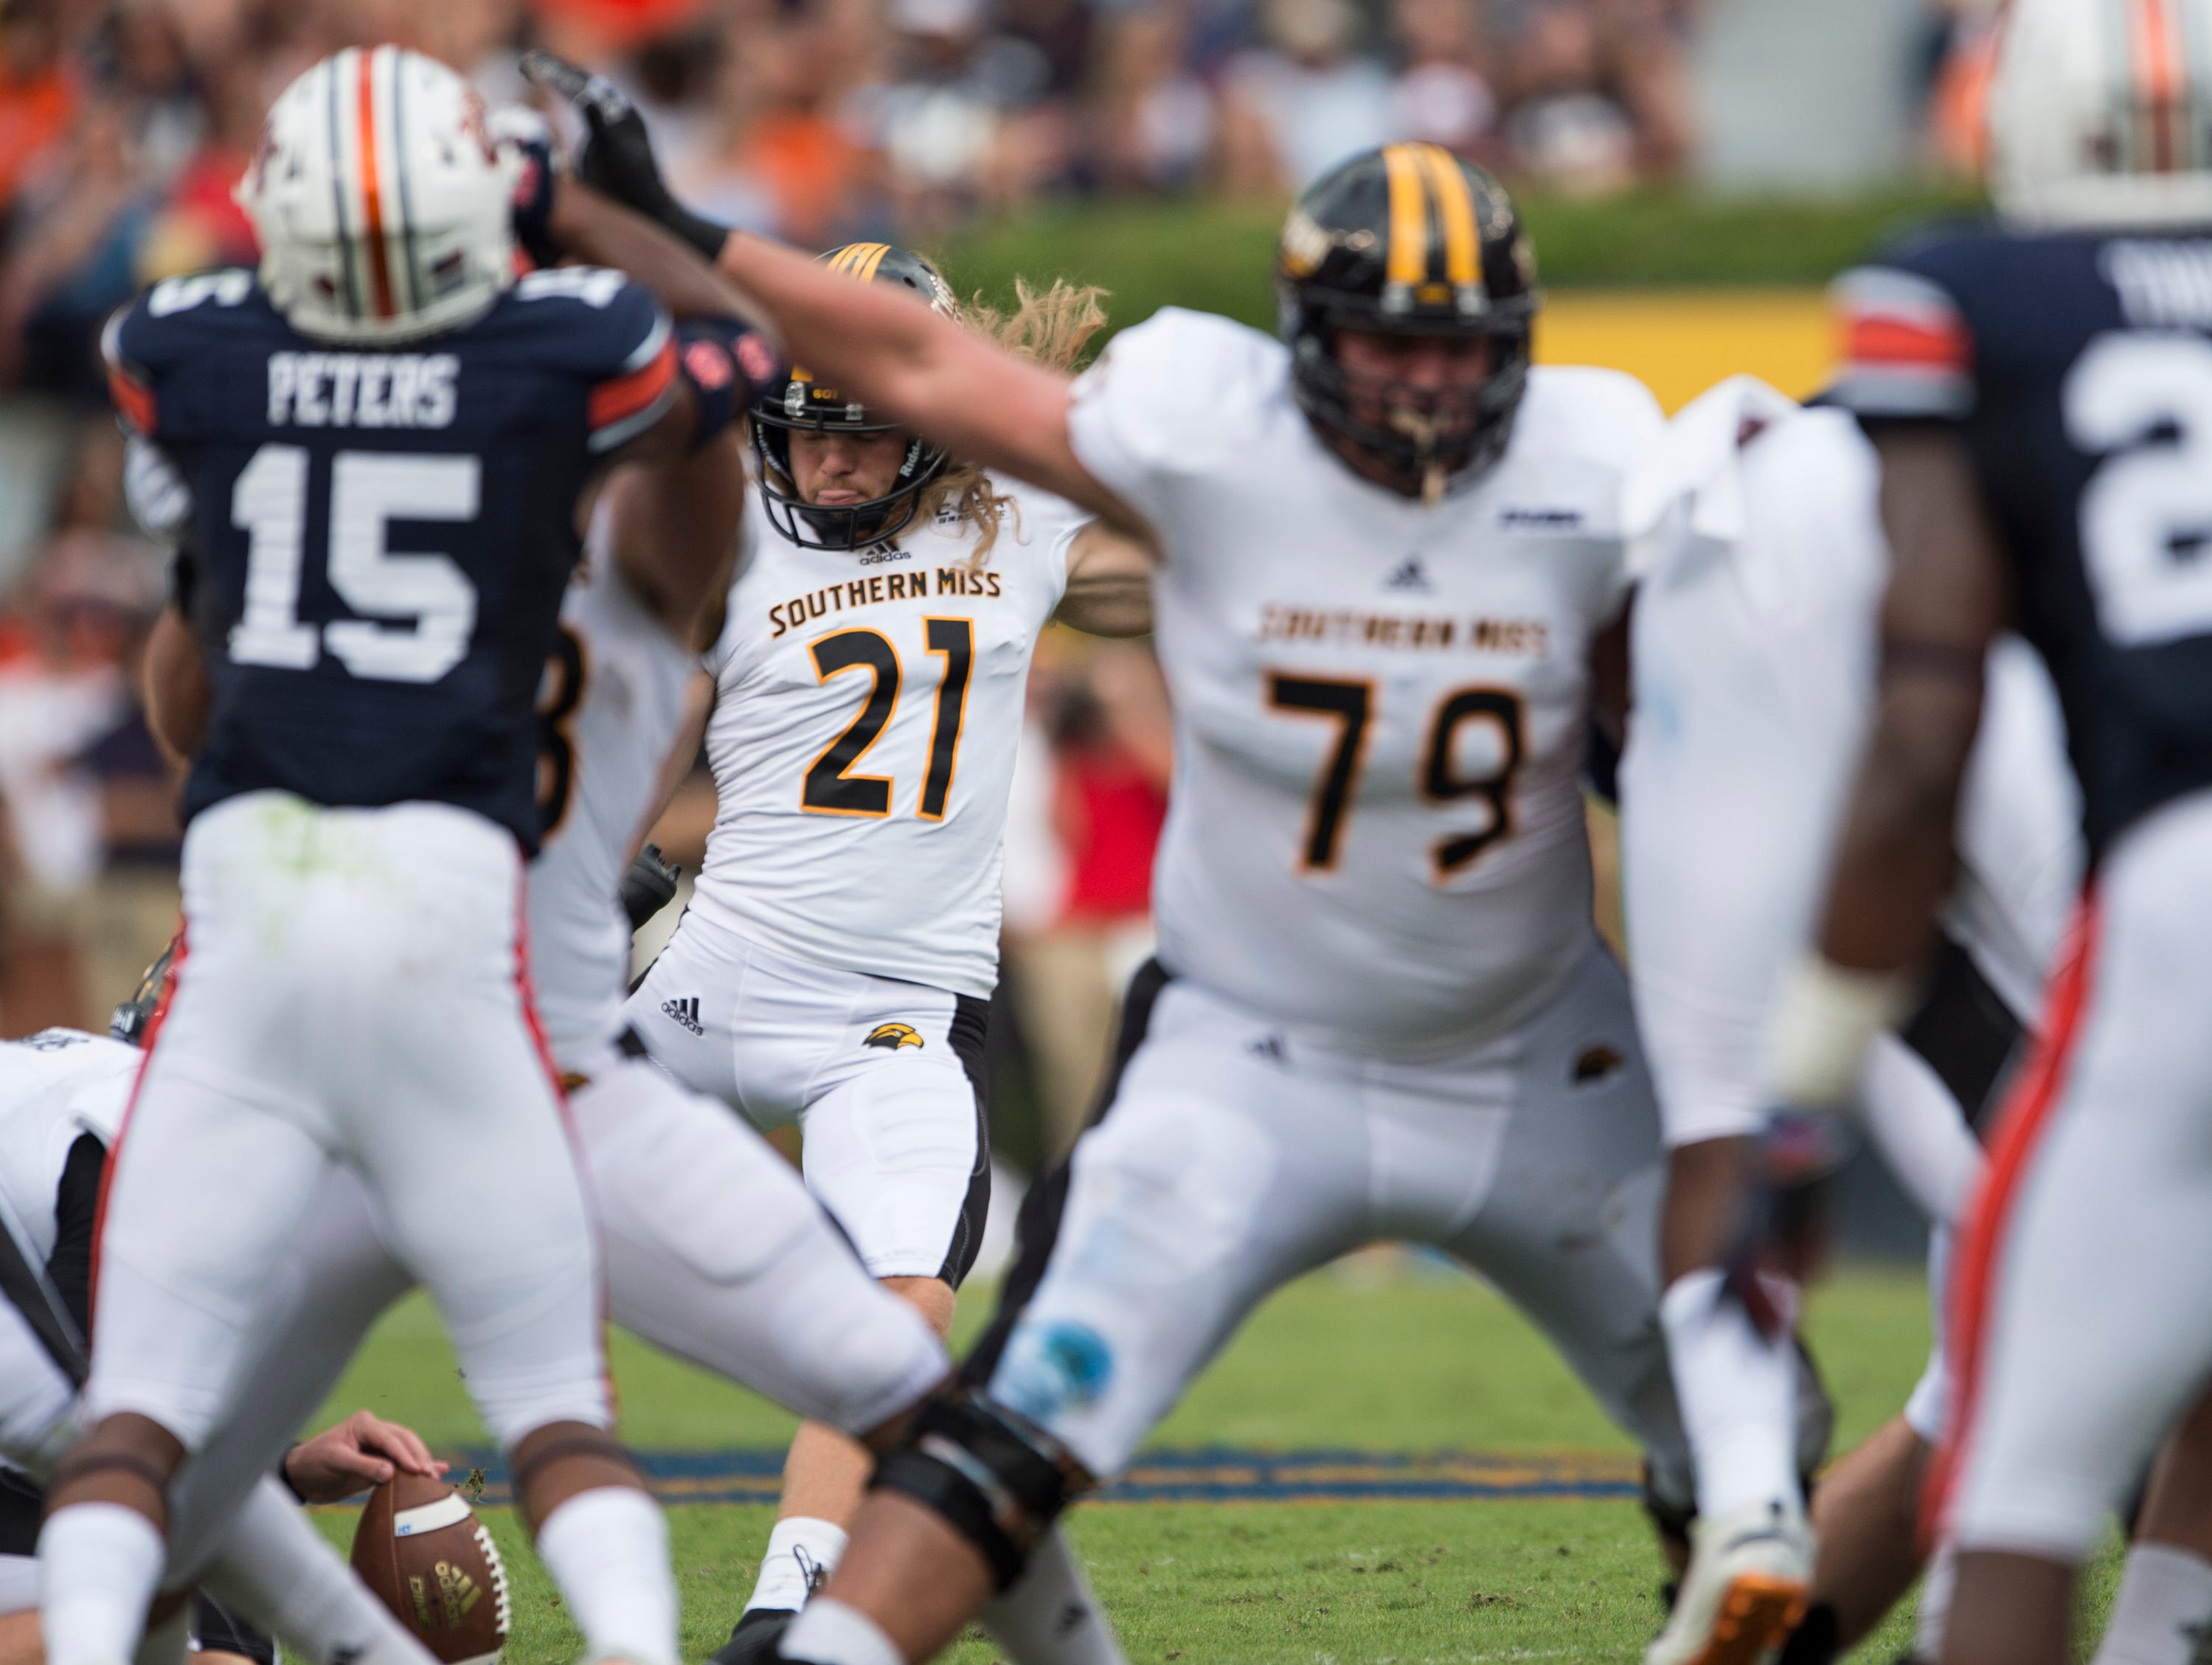 Southern Miss' Parker Shaunfield (21) kicks a field goal against  Auburn at Jordan-Hare Stadium in Auburn, Ala., on Saturday, Sept. 29, 2018. Auburn leads Southern Miss 14-3, the game went into a weather delay with 4:27 left in the second quarter.